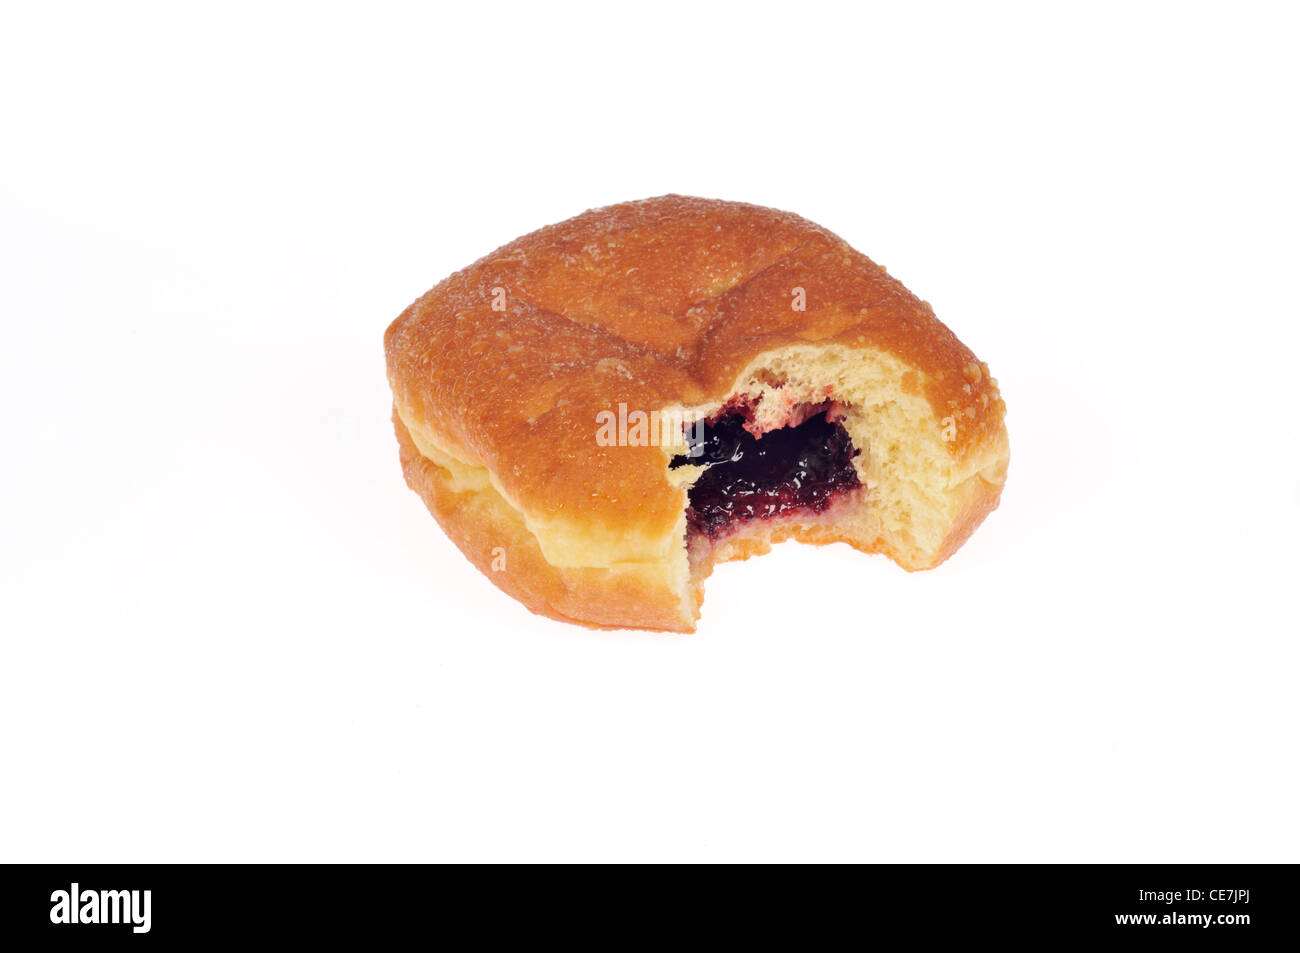 Single jelly-filled donut with bite taken out of it on white background cutout - Stock Image